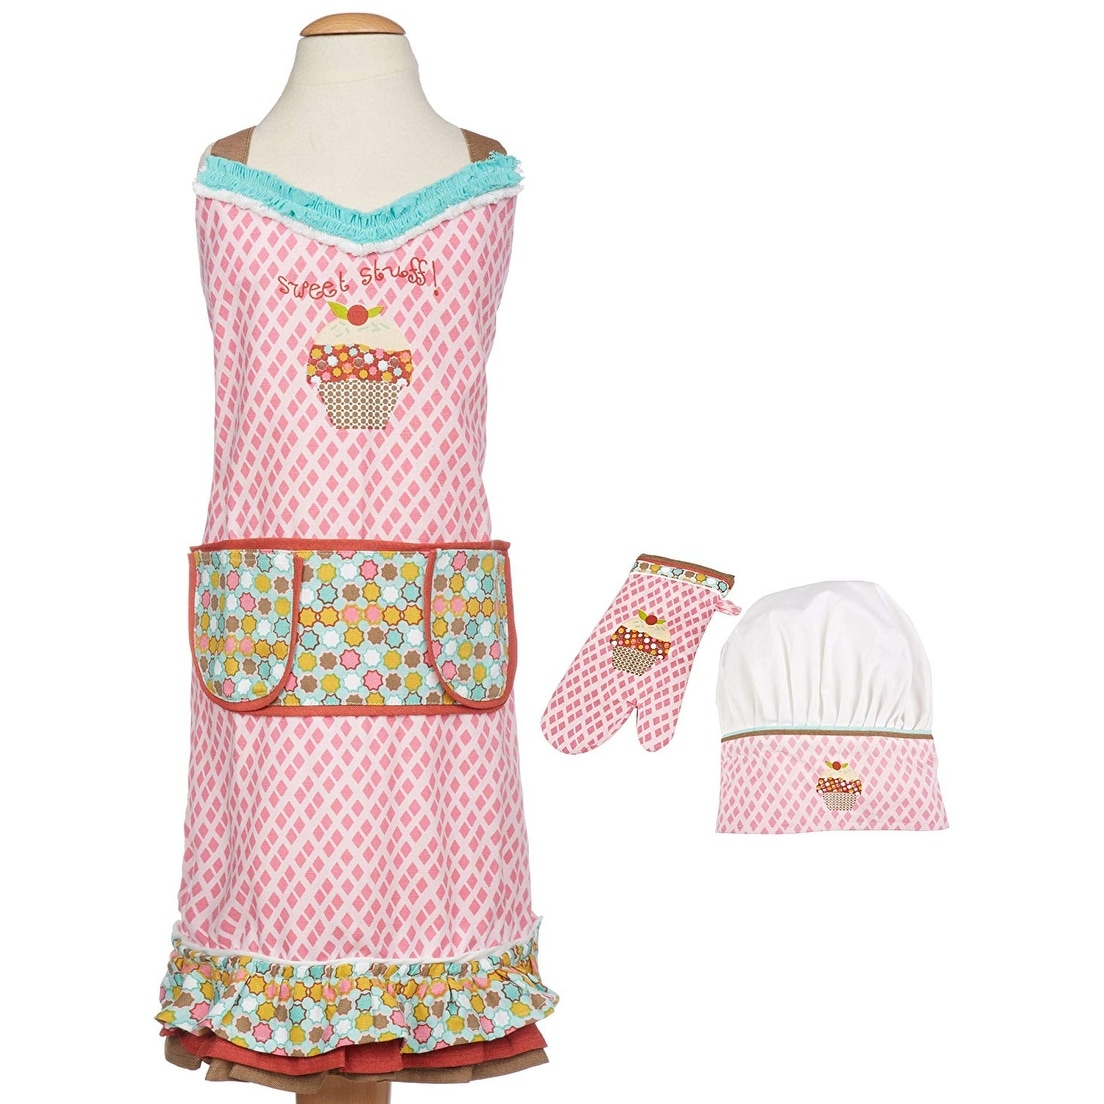 M-Aimee 8 Pieces Kids Apron and Chef Hat Set Red+Yellow+Blue+Purple Adjustable Cotton Child Aprons with 2 Pockets Kitchen Bib Aprons for Kitchen Cooking Baking Painting